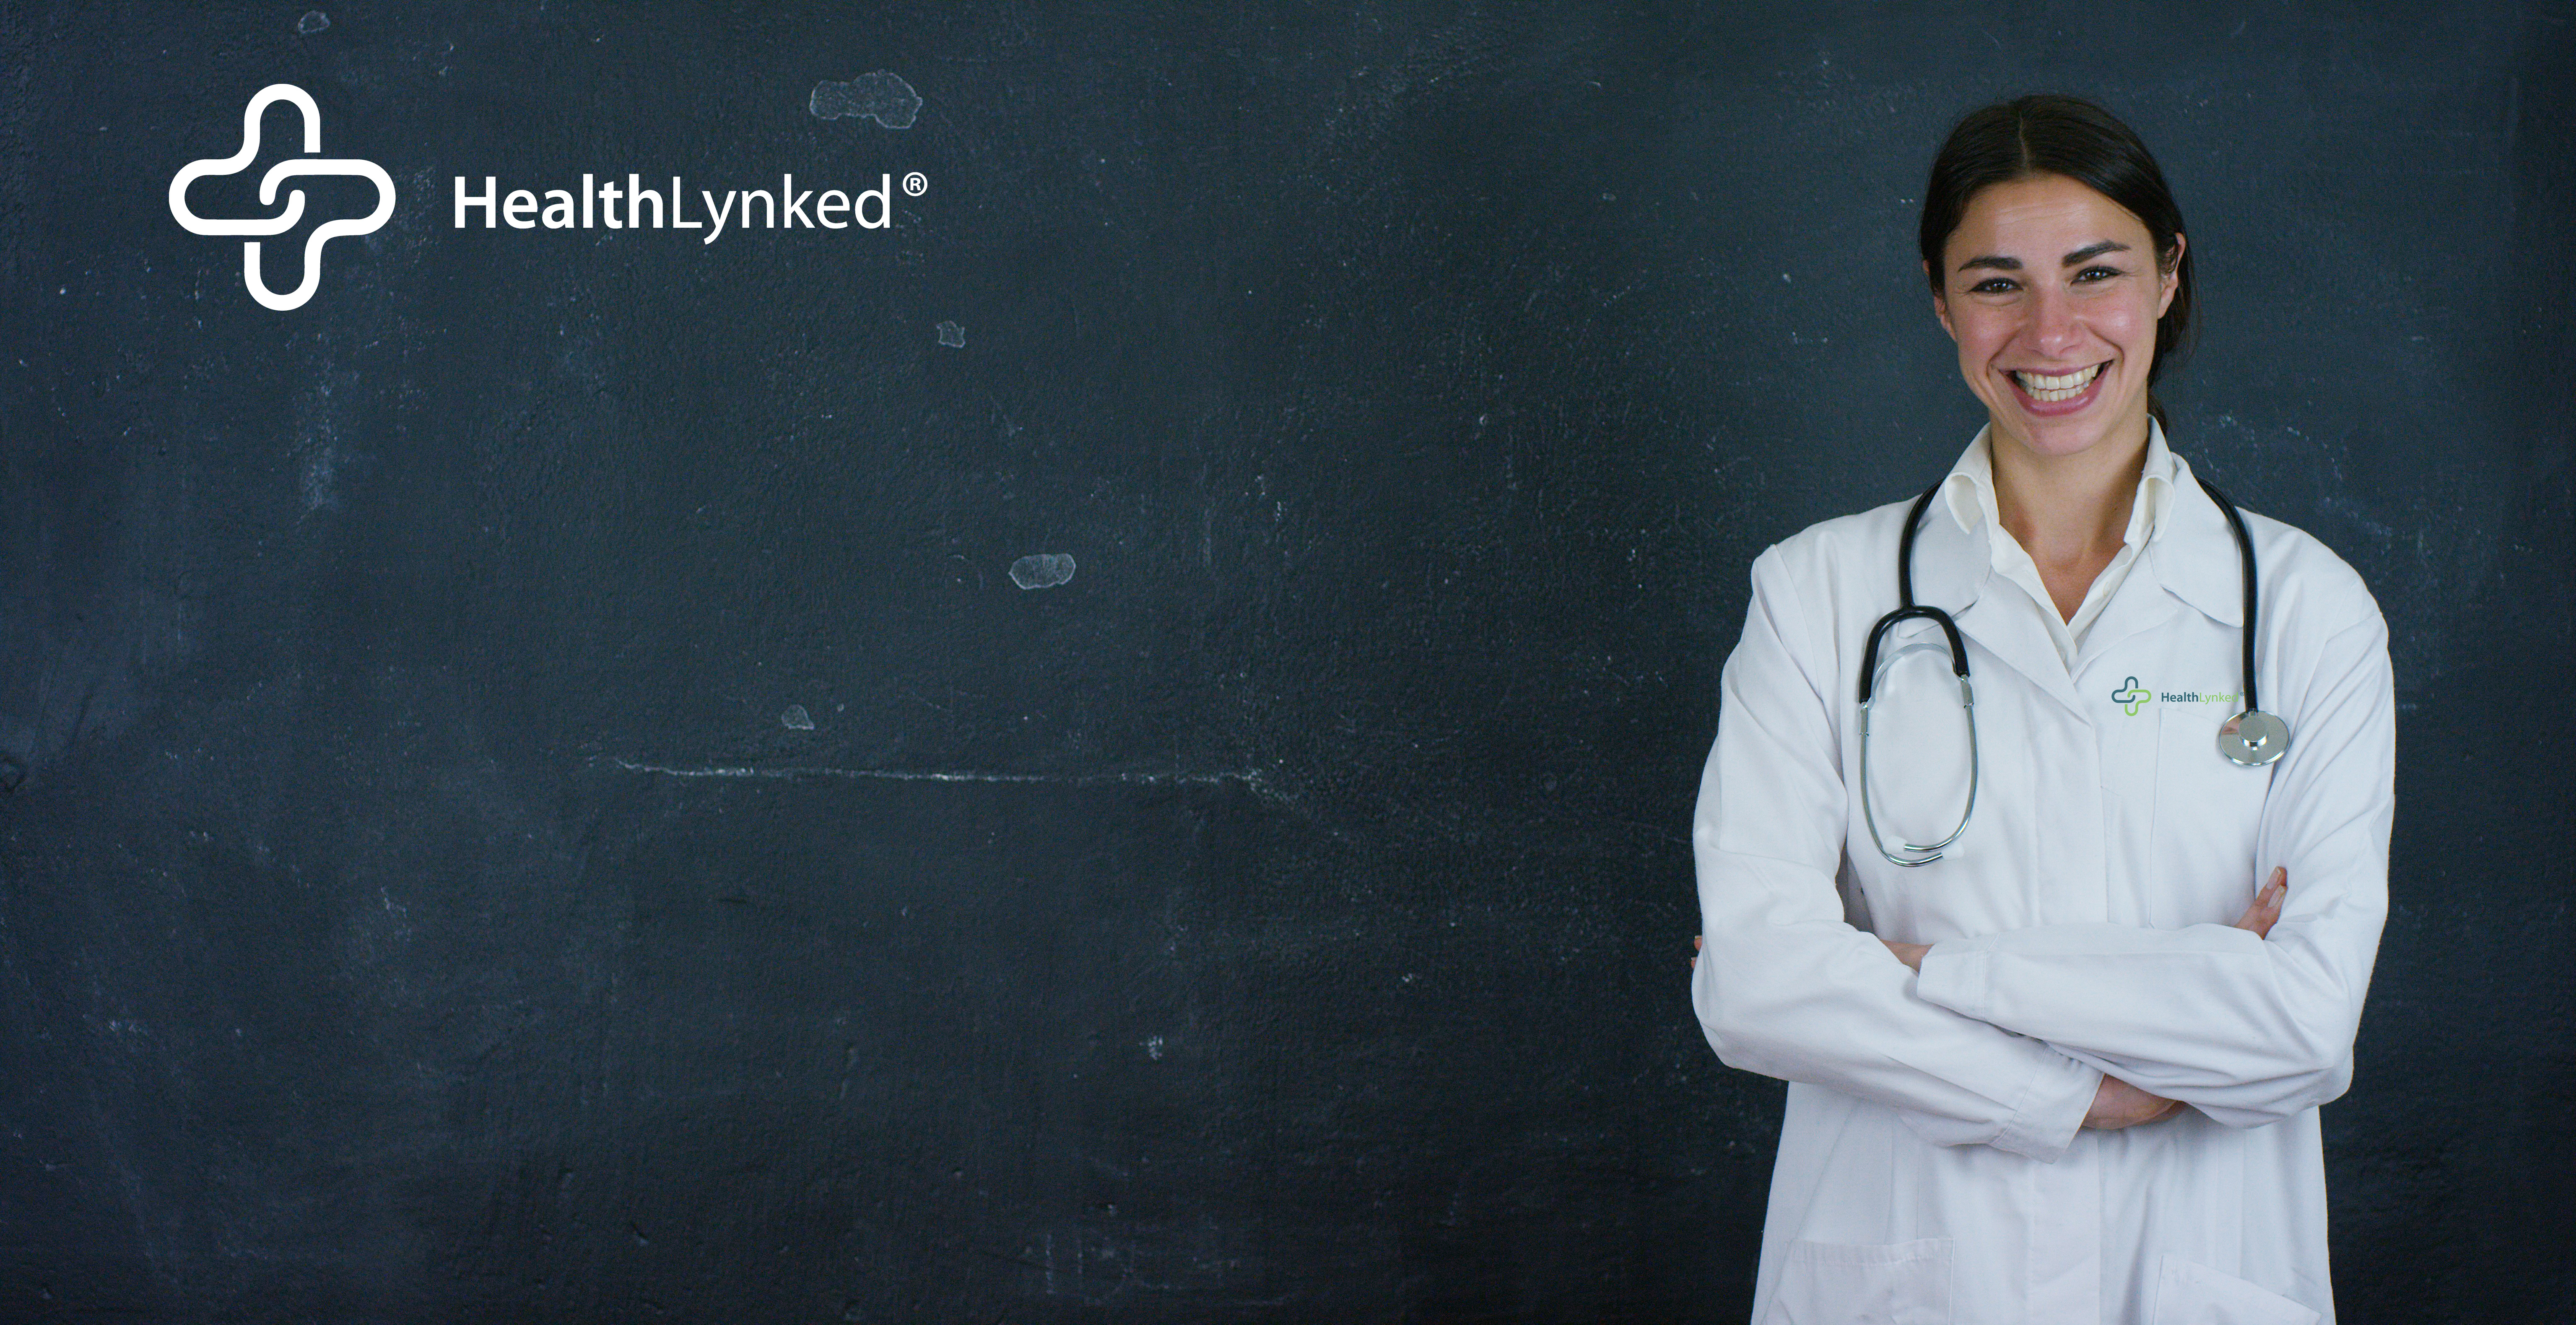 HealthLynked Corp. Announces the launch of HealthLynked University